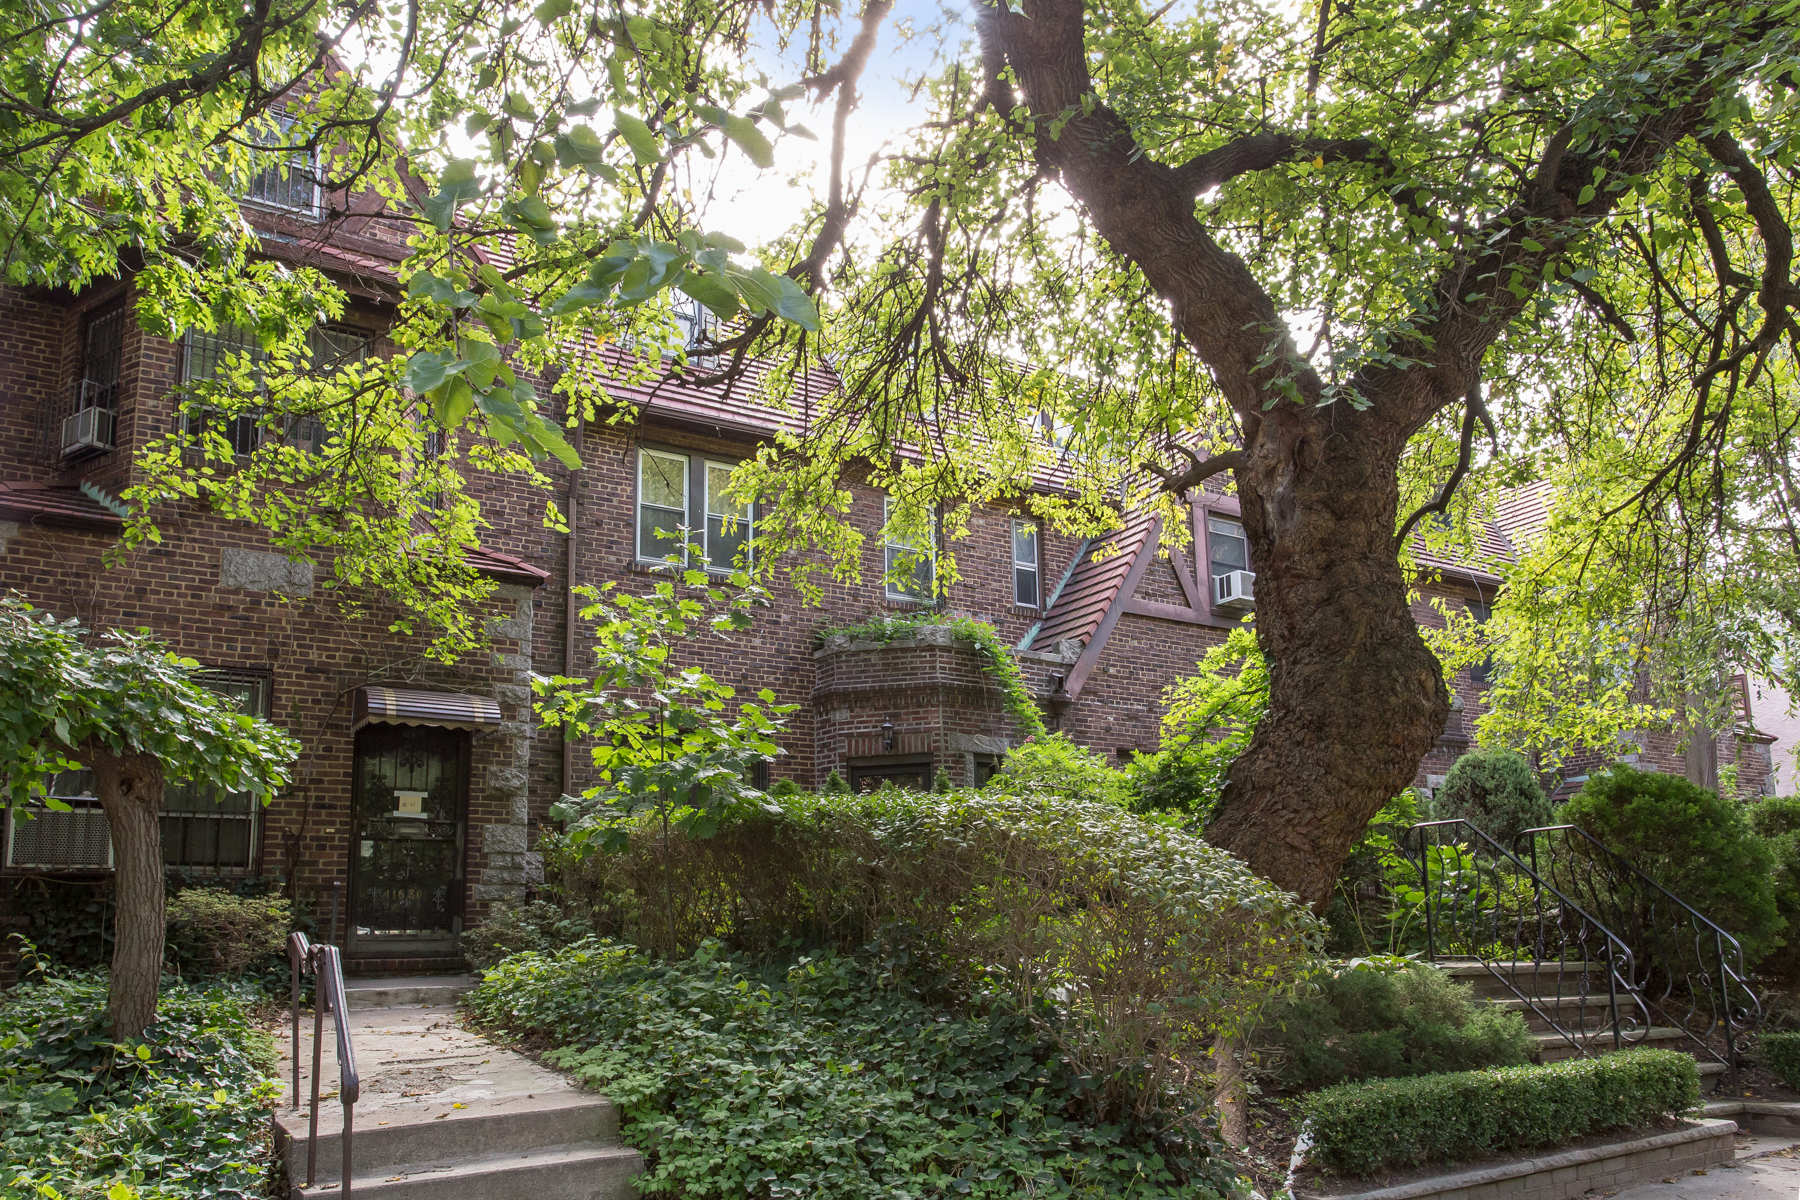 """Townhouse for Sale at """"JEWEL OF A TOWNHOUSE OVERLOOKING FOREST PARK"""" 116-28 Park Lane South, Kew Gardens, New York 11415 United States"""